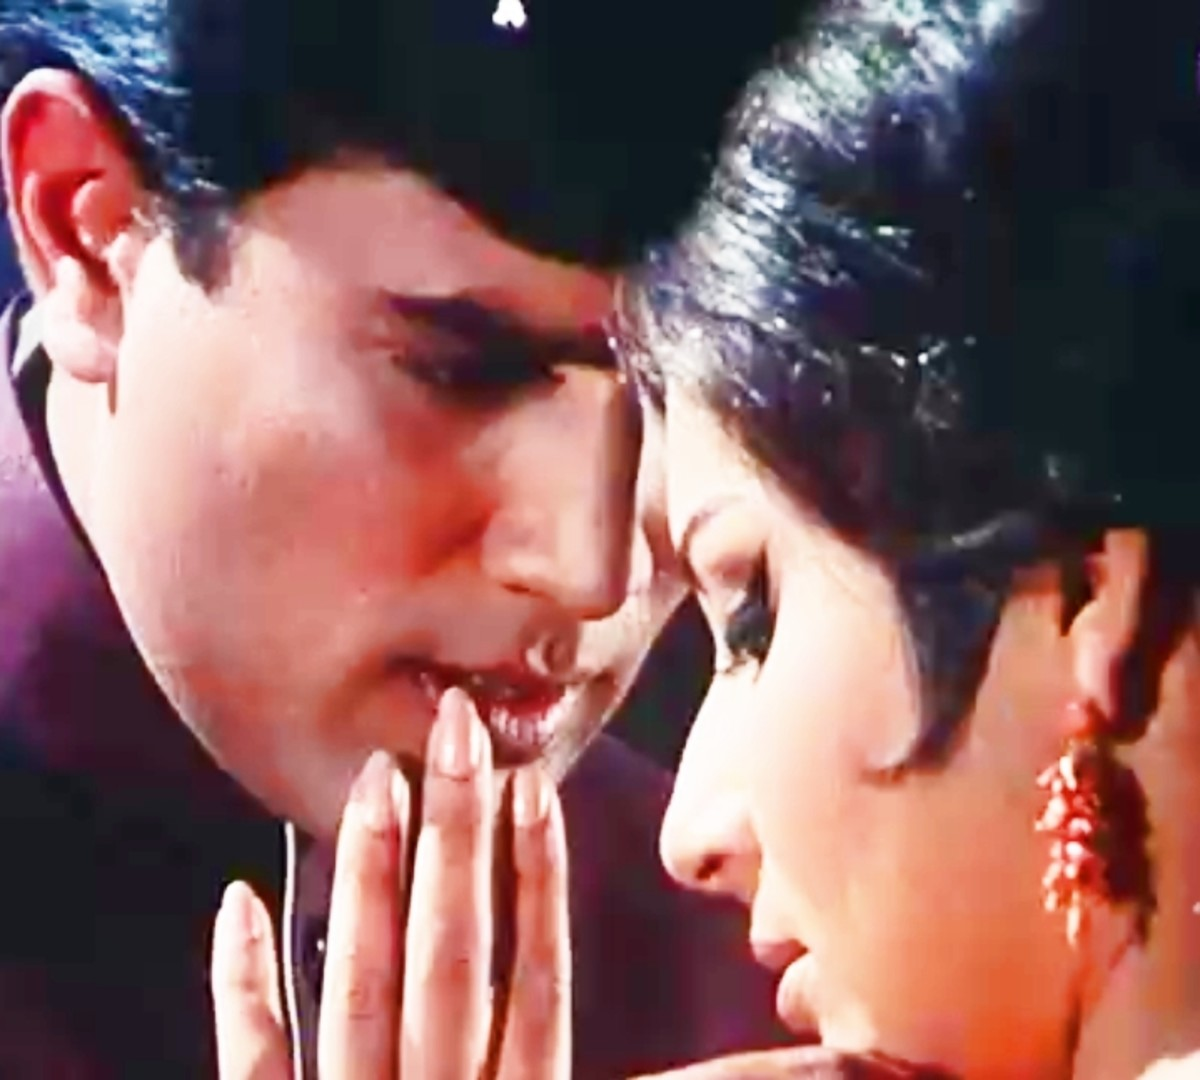 One of the most scintillating pairs on screen